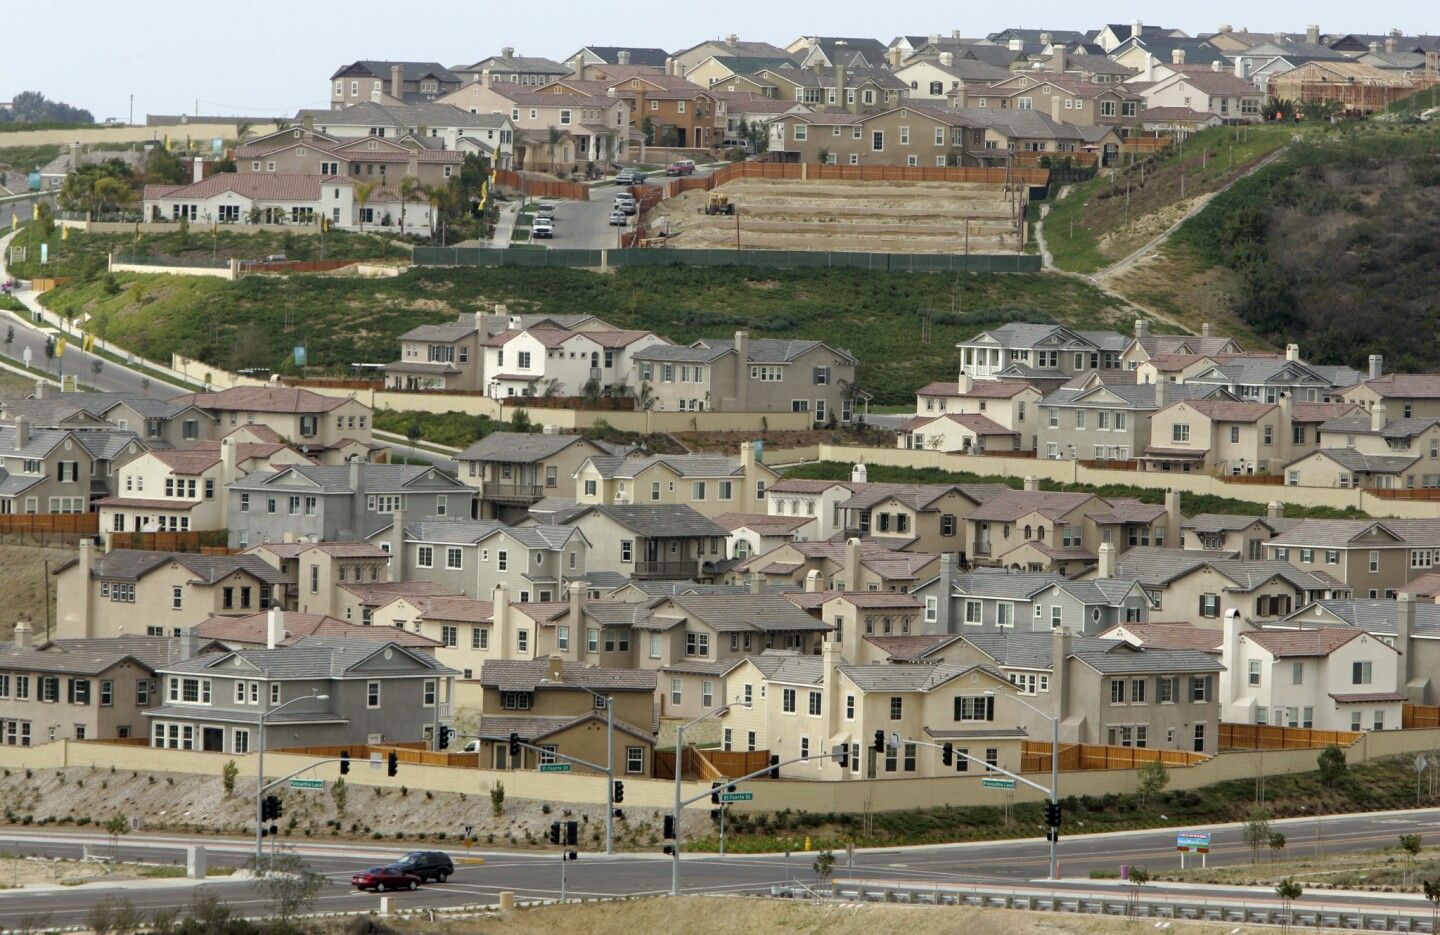 """America has added 346 new $1 million neighborhoods since 2014 with an additional eight in San Diego County, says a new study from Zillow. The real estate website defined """"$1 million neighborhoods"""" as those with at least 10 percent of homes valued at $1 million. There are now more $1 million ZIP codes nationwide than at the housing market peak in 2007. Zillow's estimated home value is based on a proprietary formula that looks at market conditions, public sales data, tax assessments and size of homes. While some value increases seem obvious, like downtown or coastal markets, others represent areas further from job centers that come with longer commutes. San Diego County has 27 $1 million ZIP codes as defined by Zillow."""